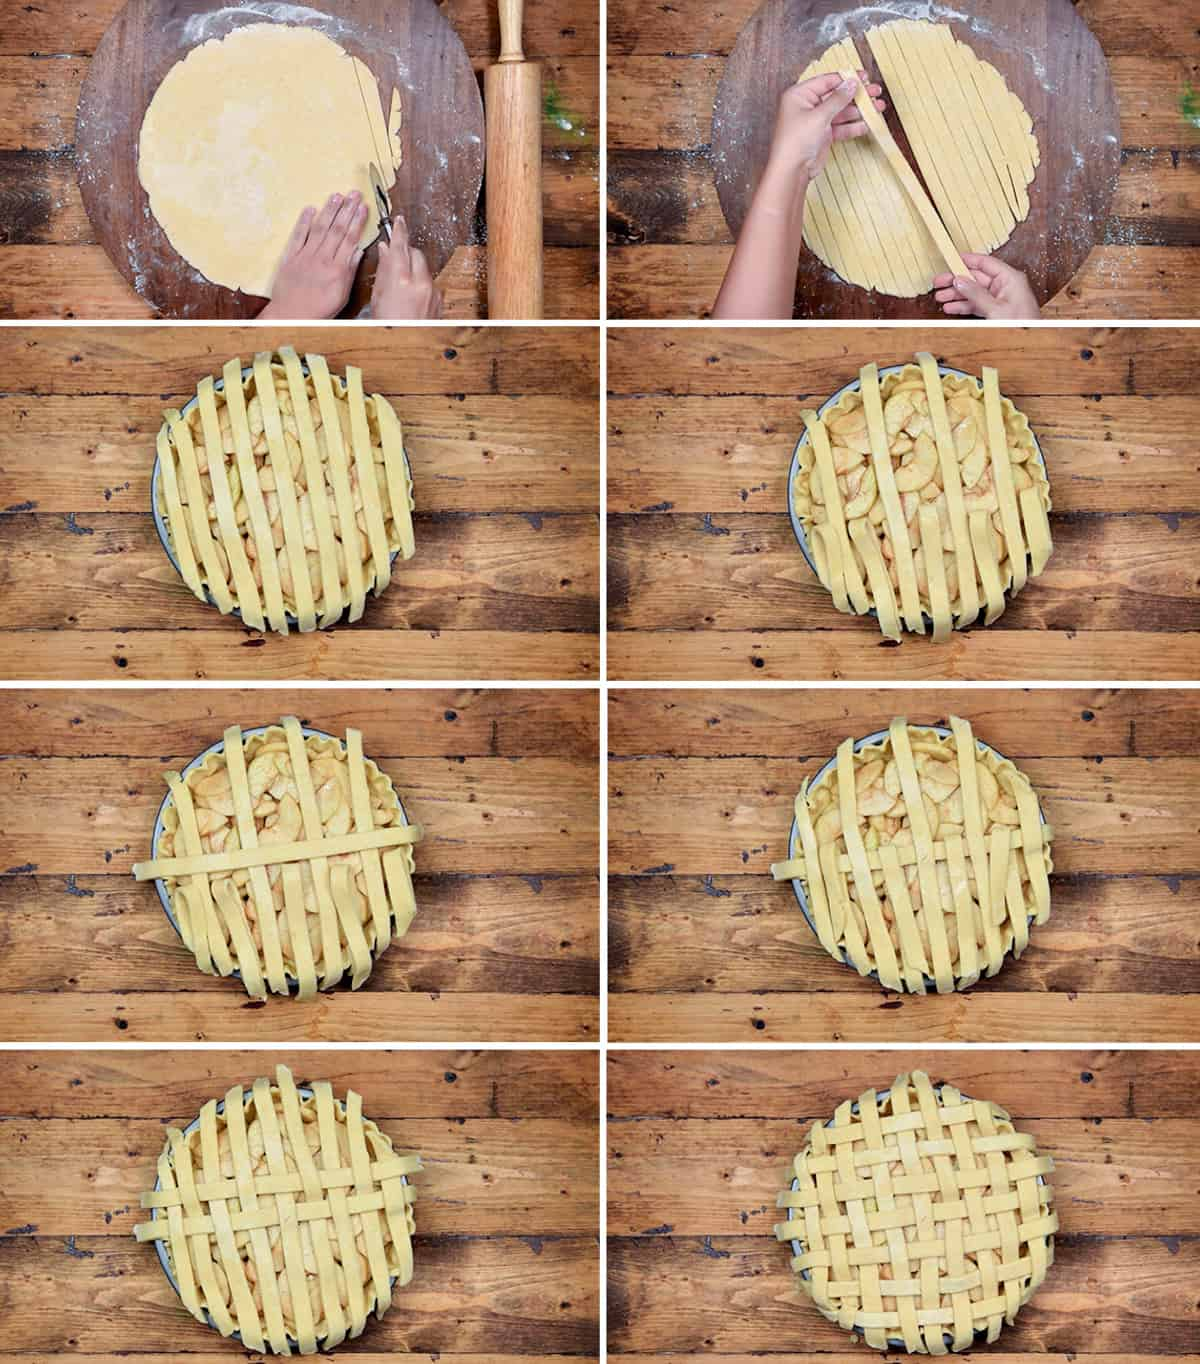 eight step collage showing the making of lattice top crust for apple pie